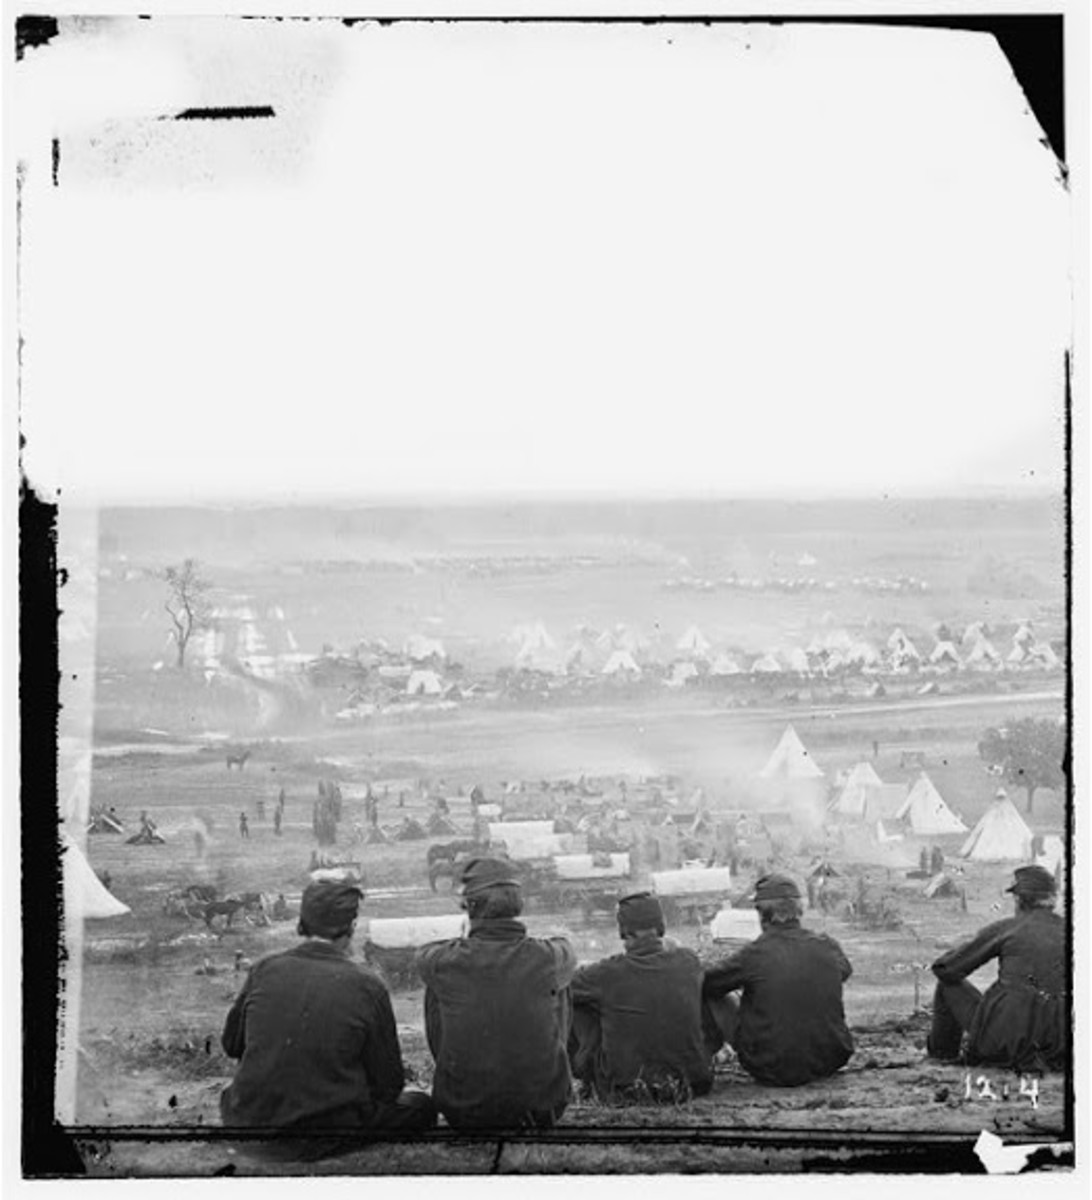 Troops lounge on a hillside above a Union Army camp in the field